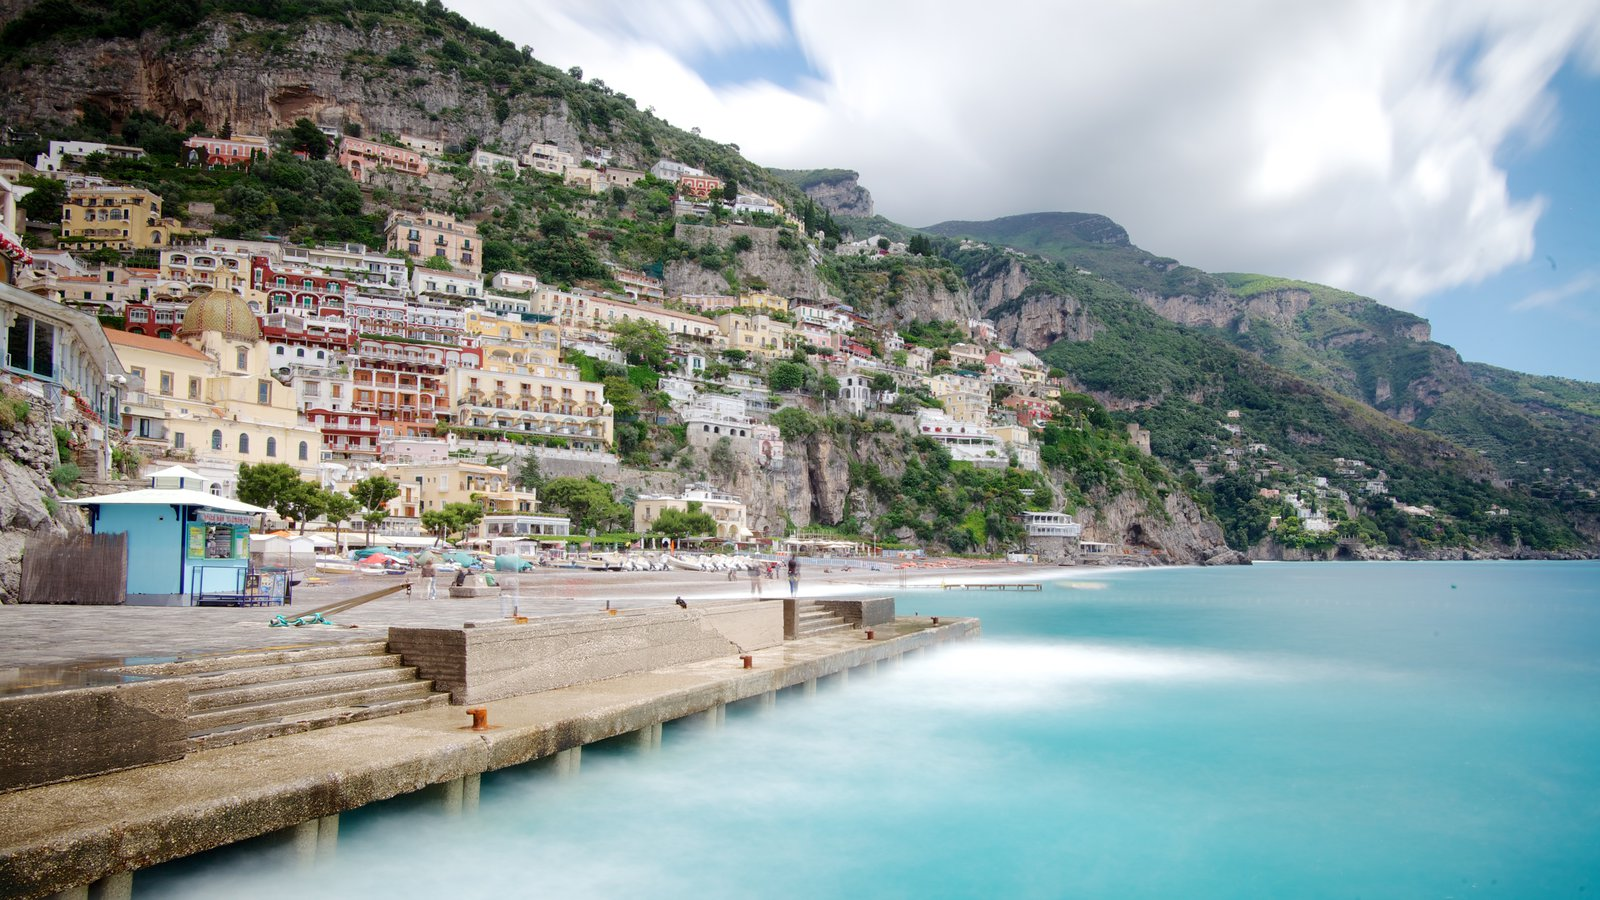 Positano featuring a city, a coastal town and general coastal views